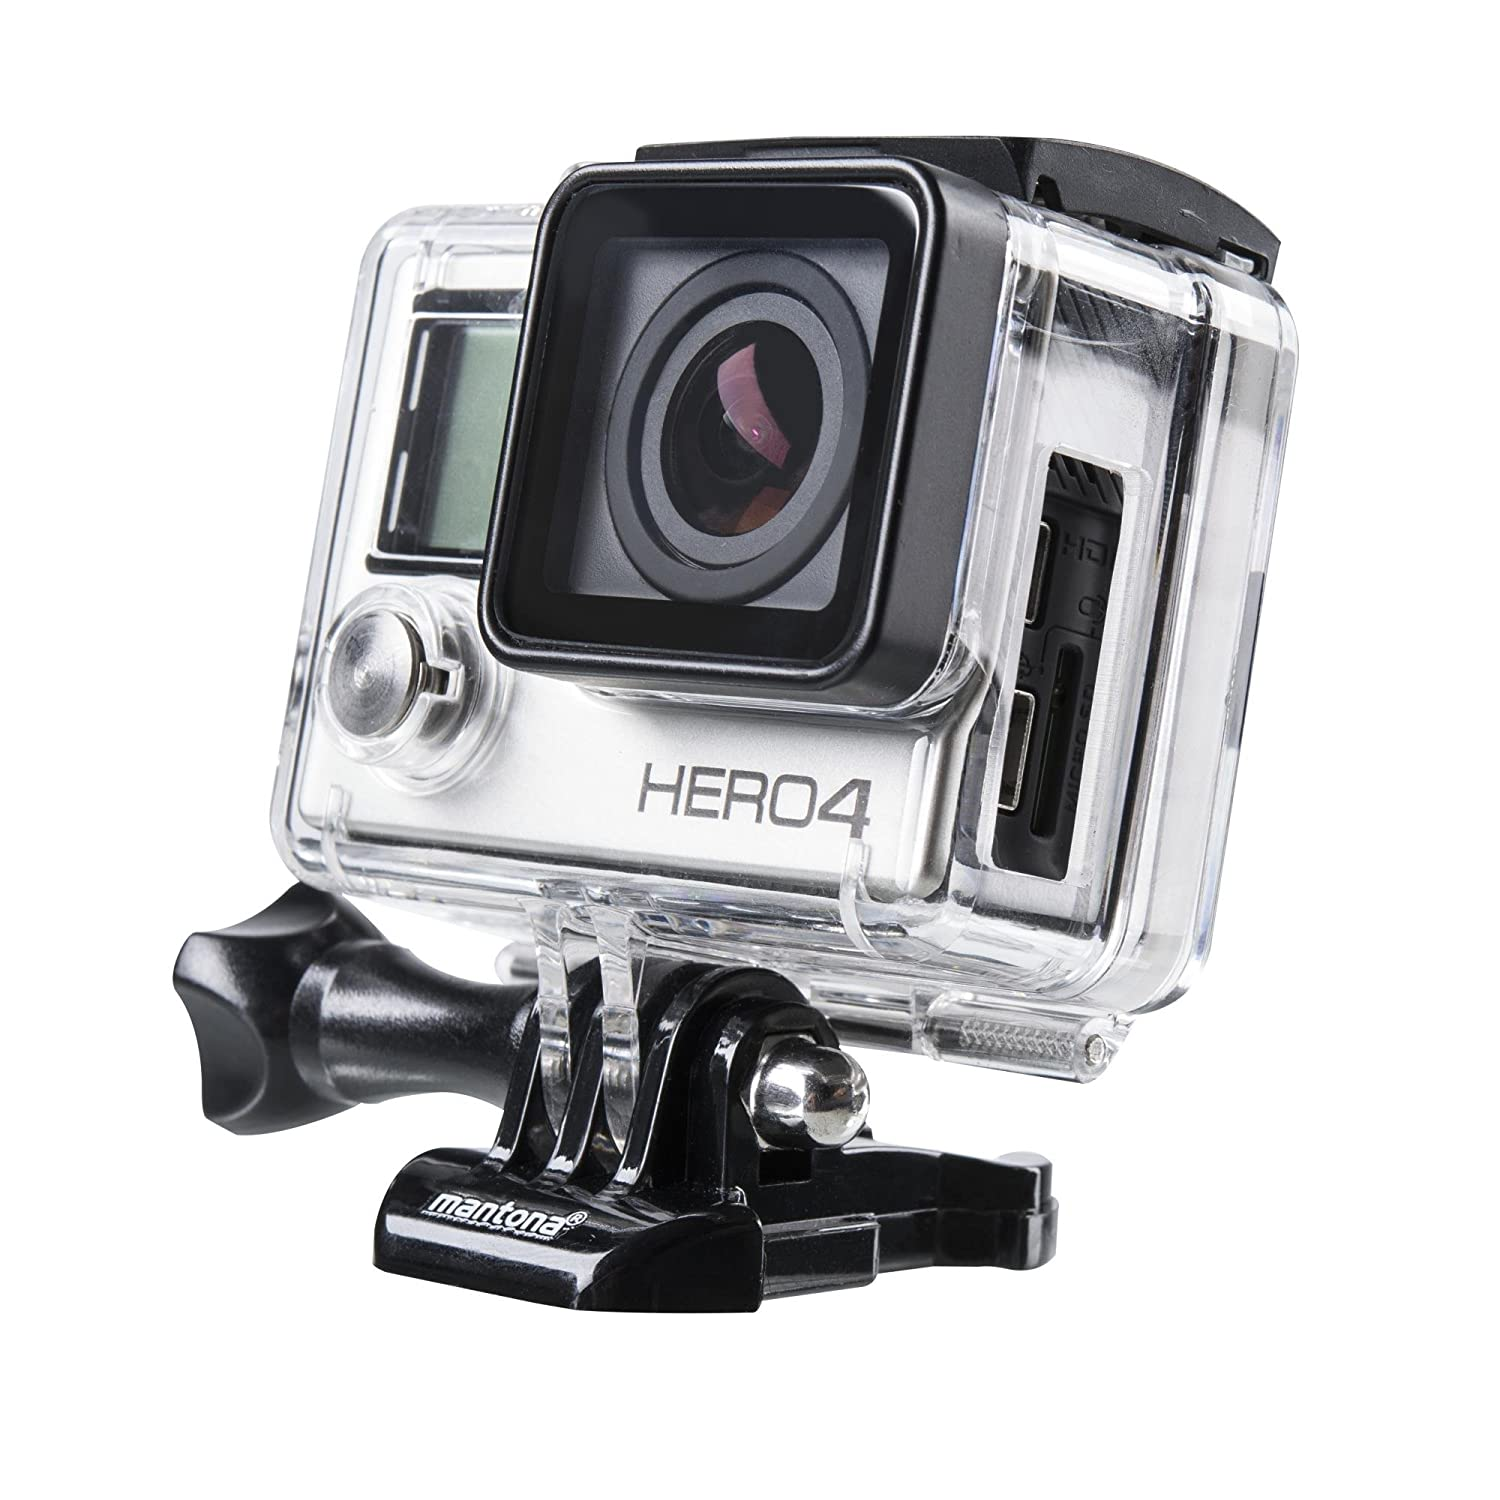 Amazon.com: Mantona 21038 - Carcasa para GoPro Hero 3+/4 ...